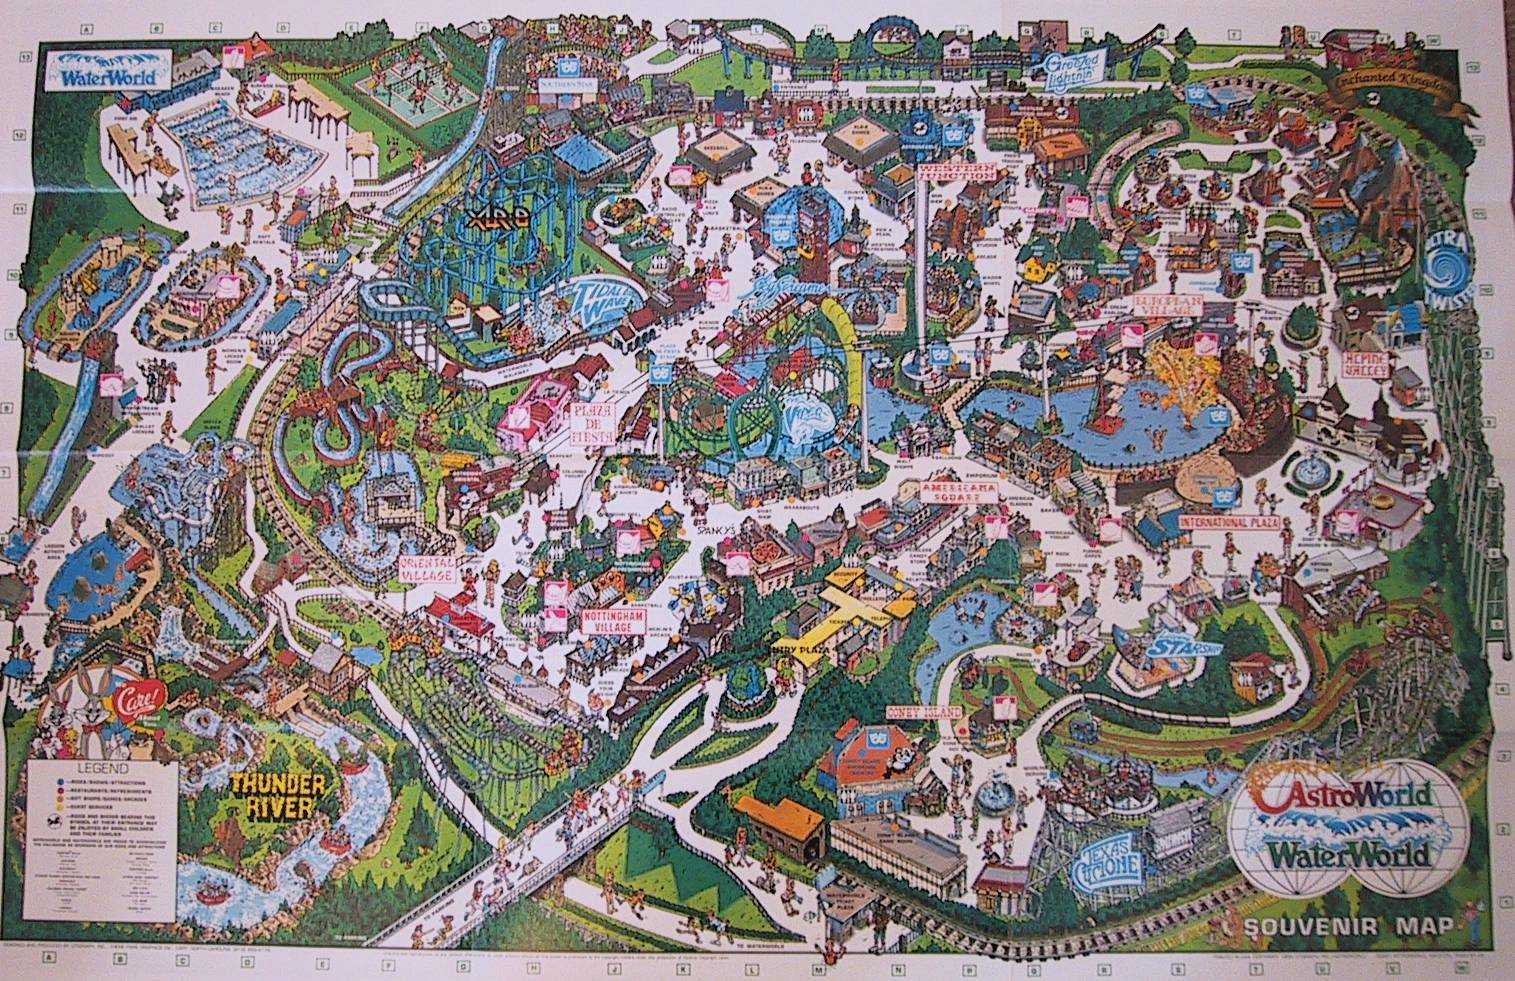 The crazy world of honey bunny six flags astroworld park maps six flags astroworld park map 1990 gumiabroncs Images